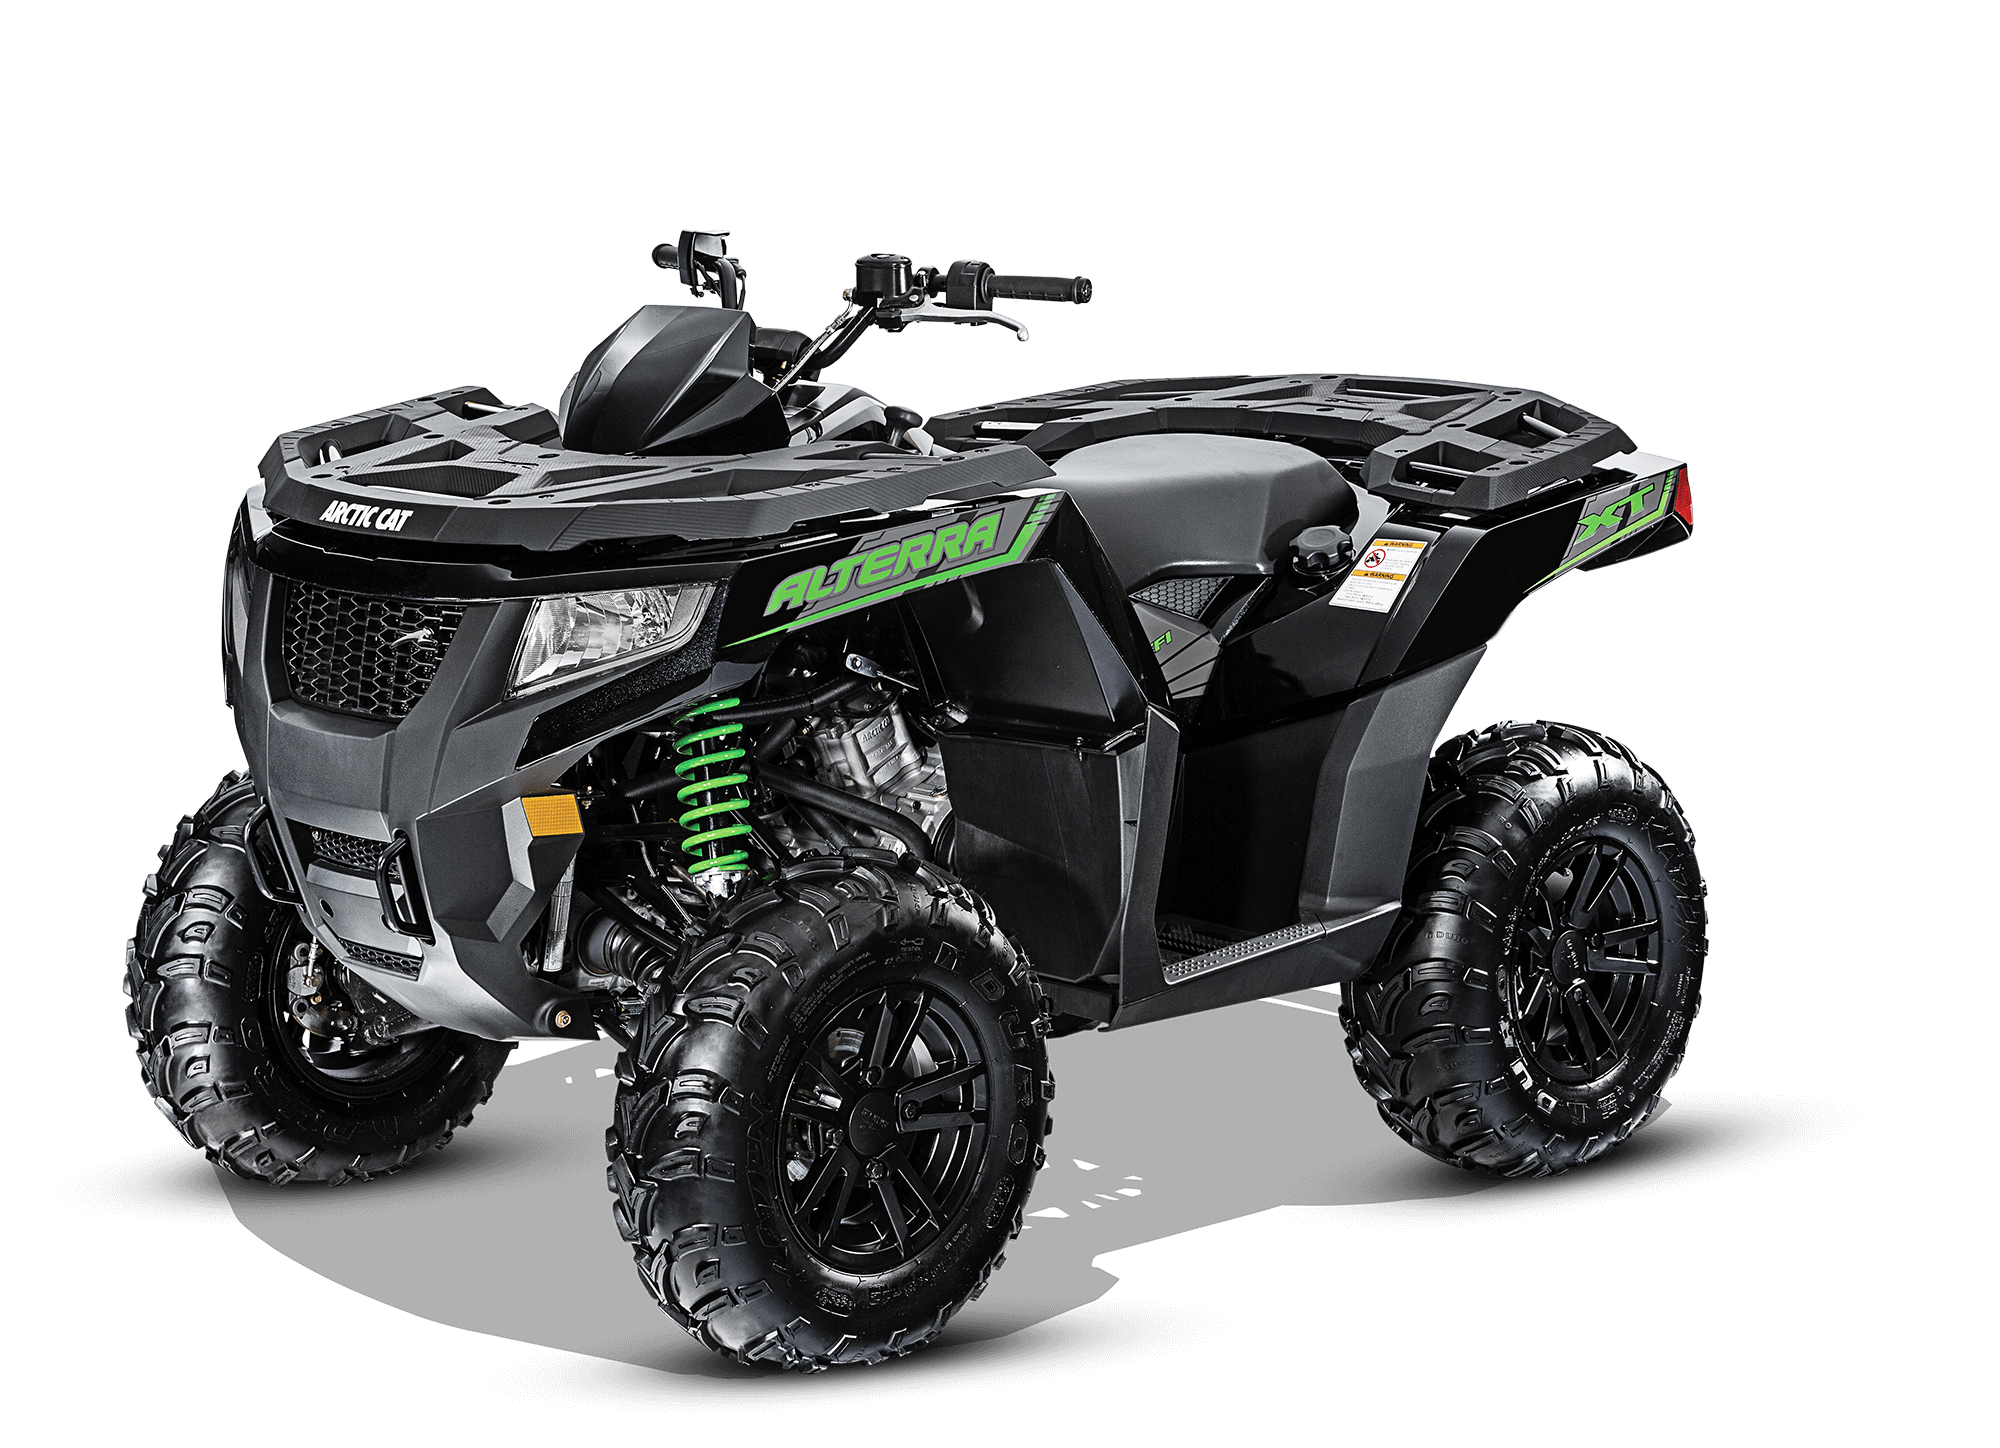 Arctic Cat Alterra 550 XT with a 545 CC, SOHC, 4Stroke, 4